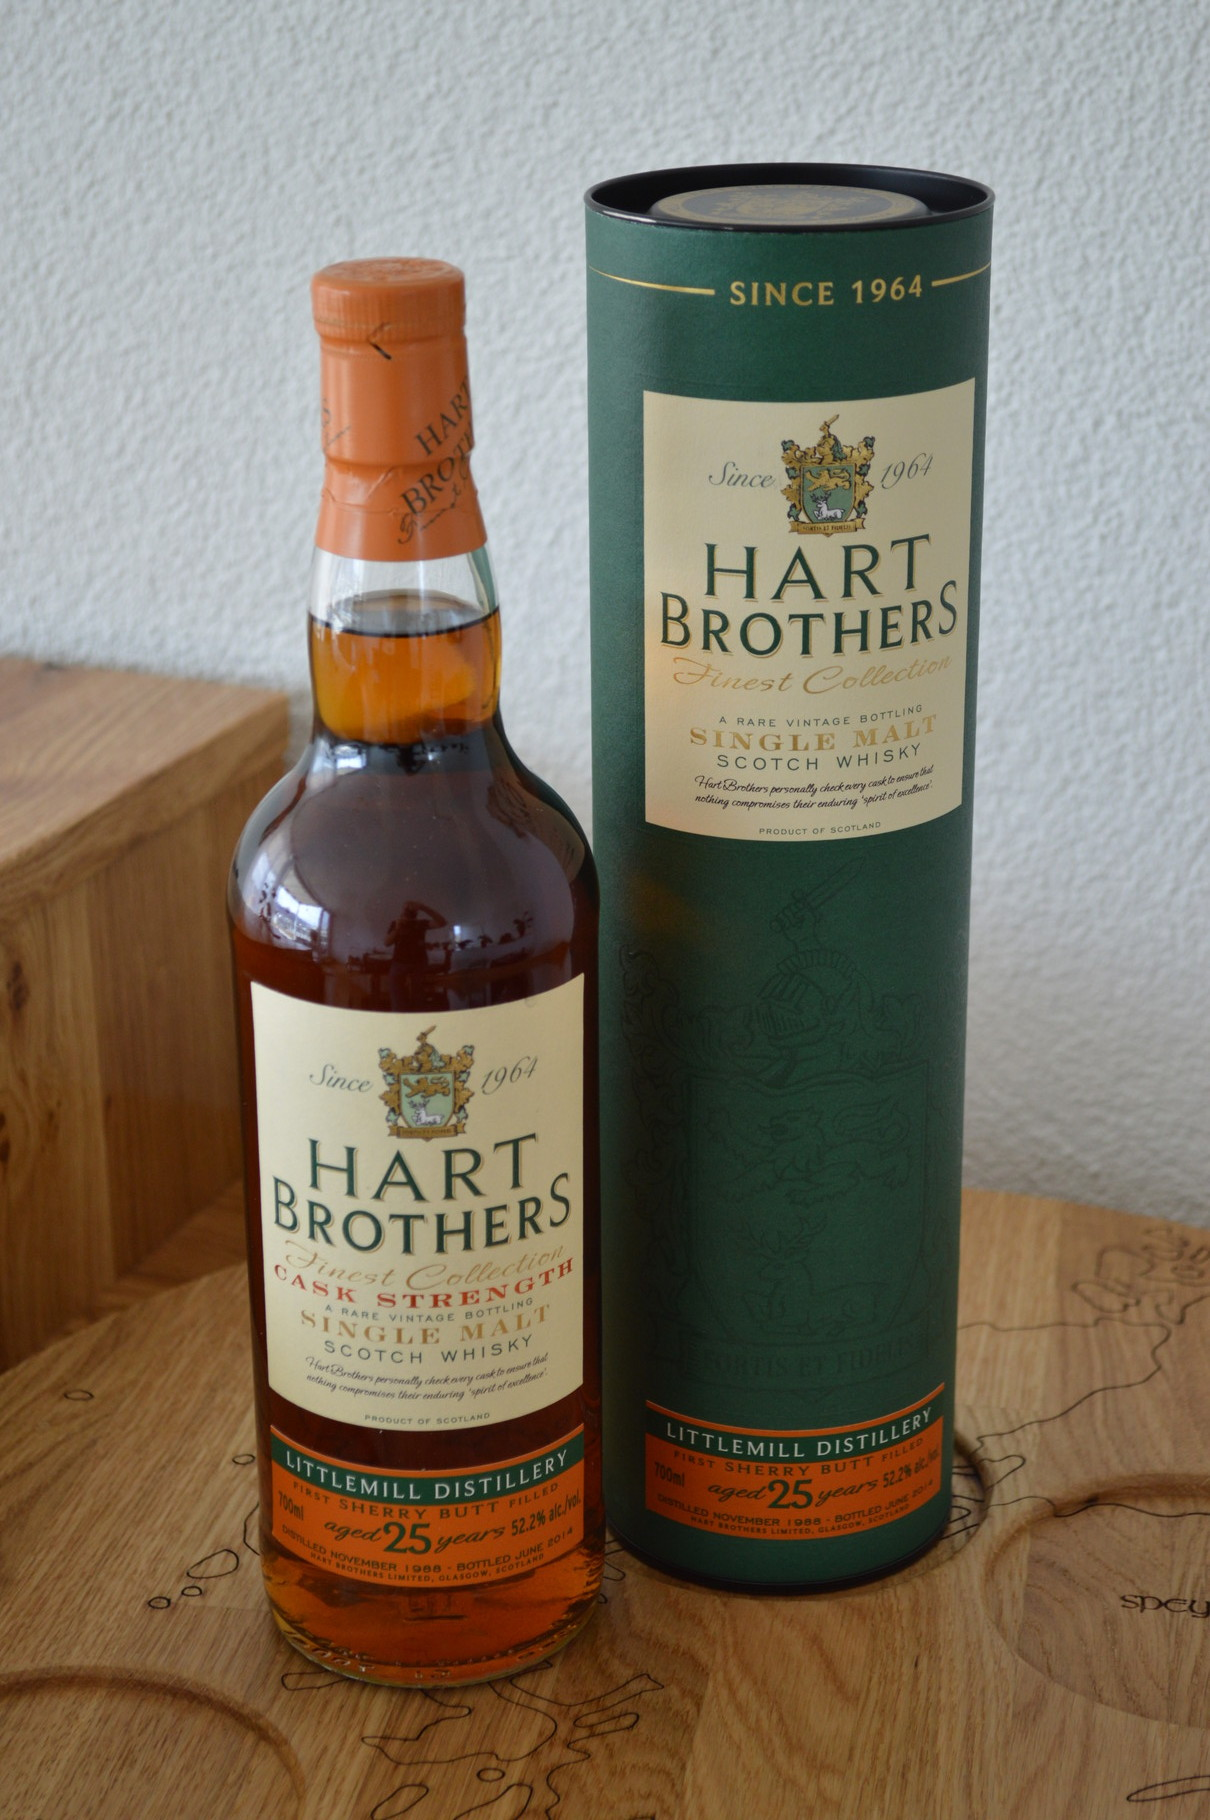 LOWLANDS - Littlemill* - Aged: 25 years - Bottler: Heartbrothers - 70cl - 52,2%